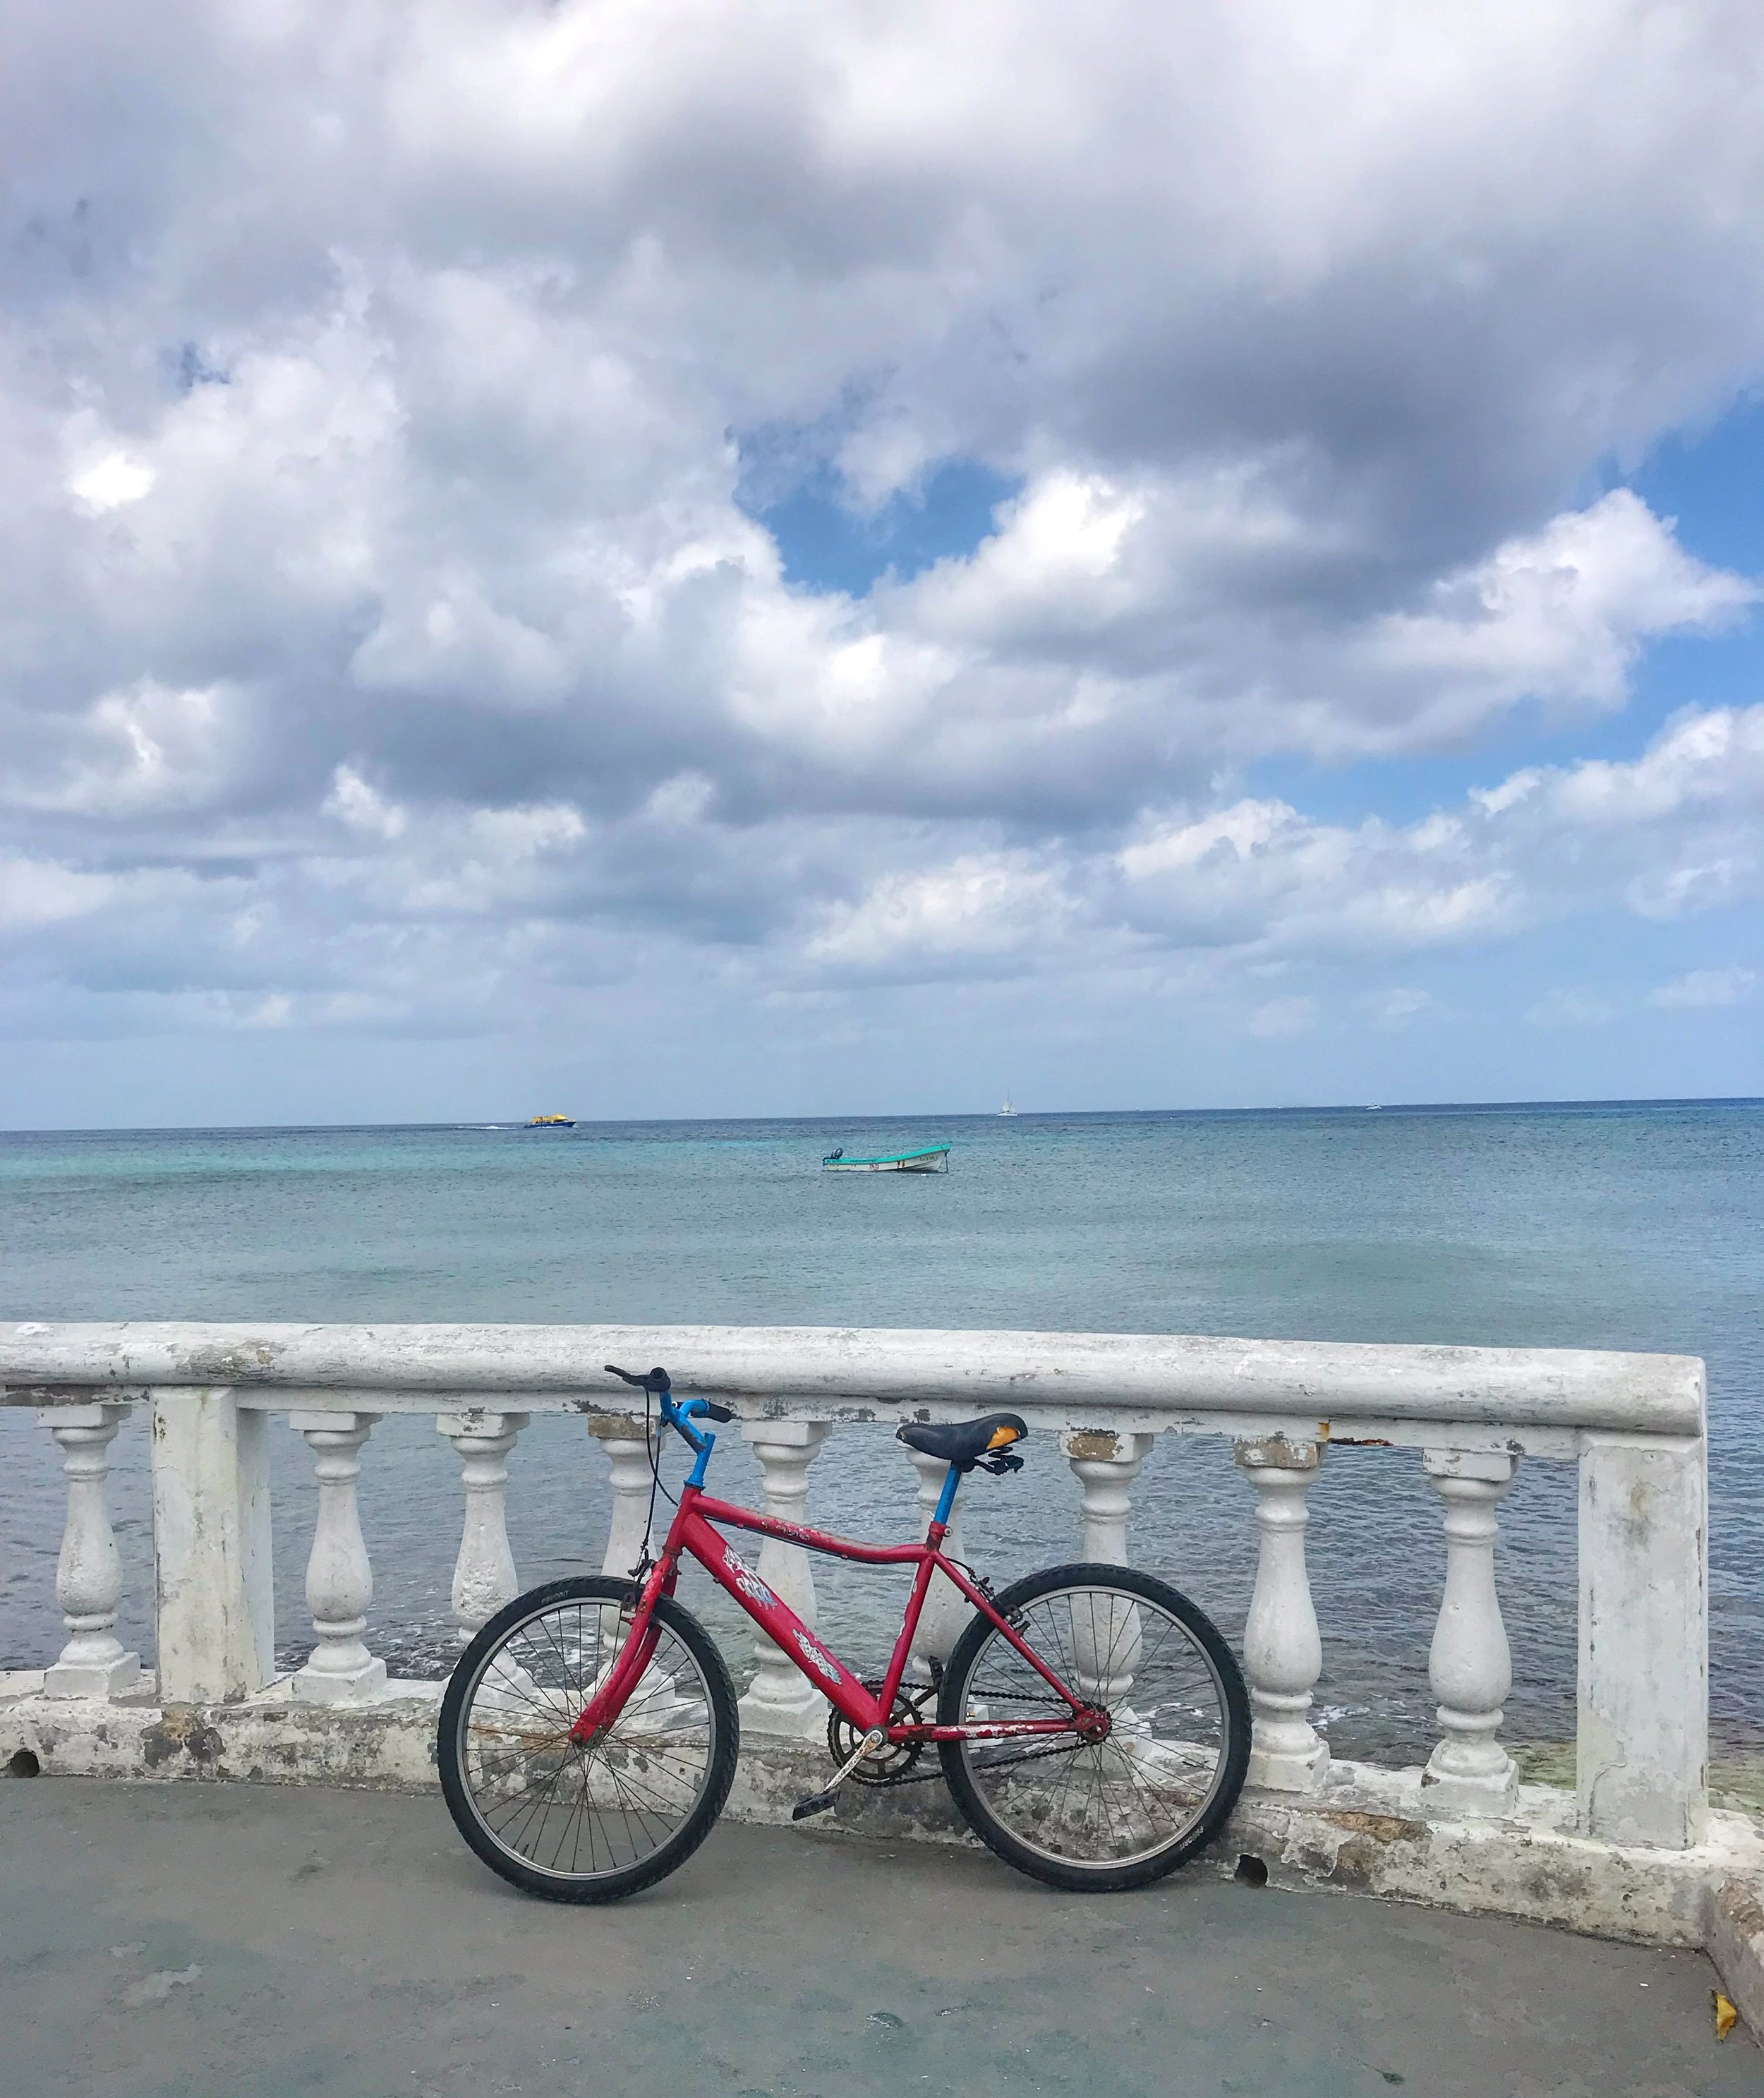 Rent a Bike during your visit to Cozumel Mexico